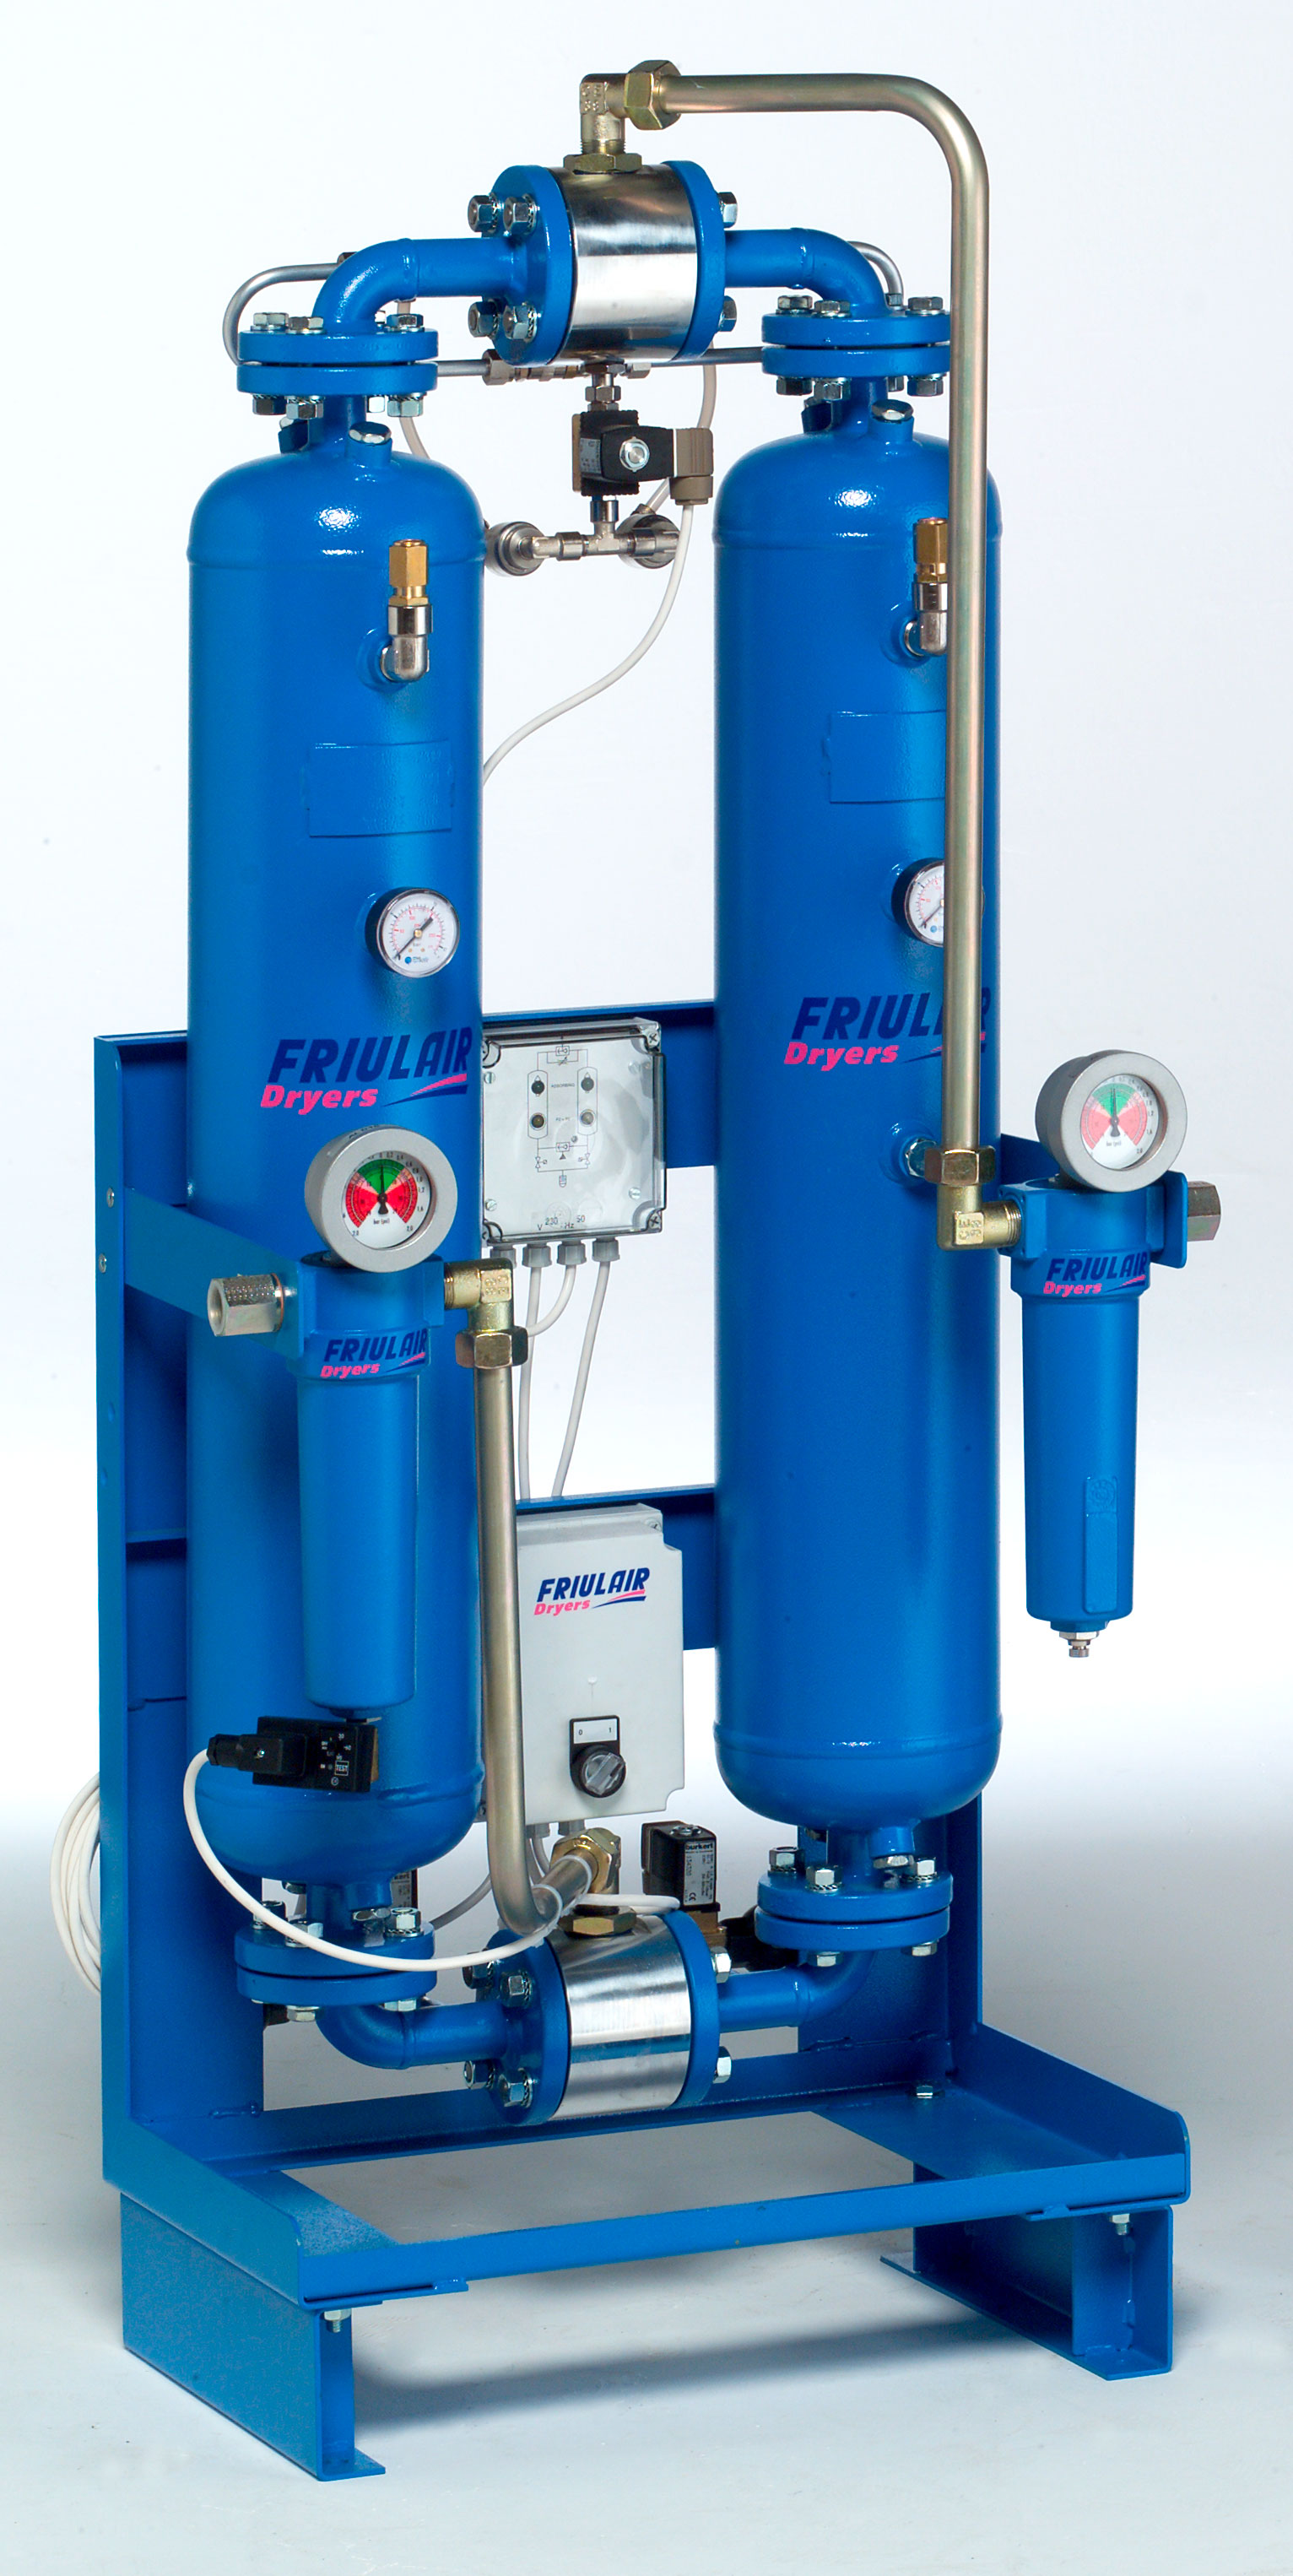 Drymec Compressed Air Dryers